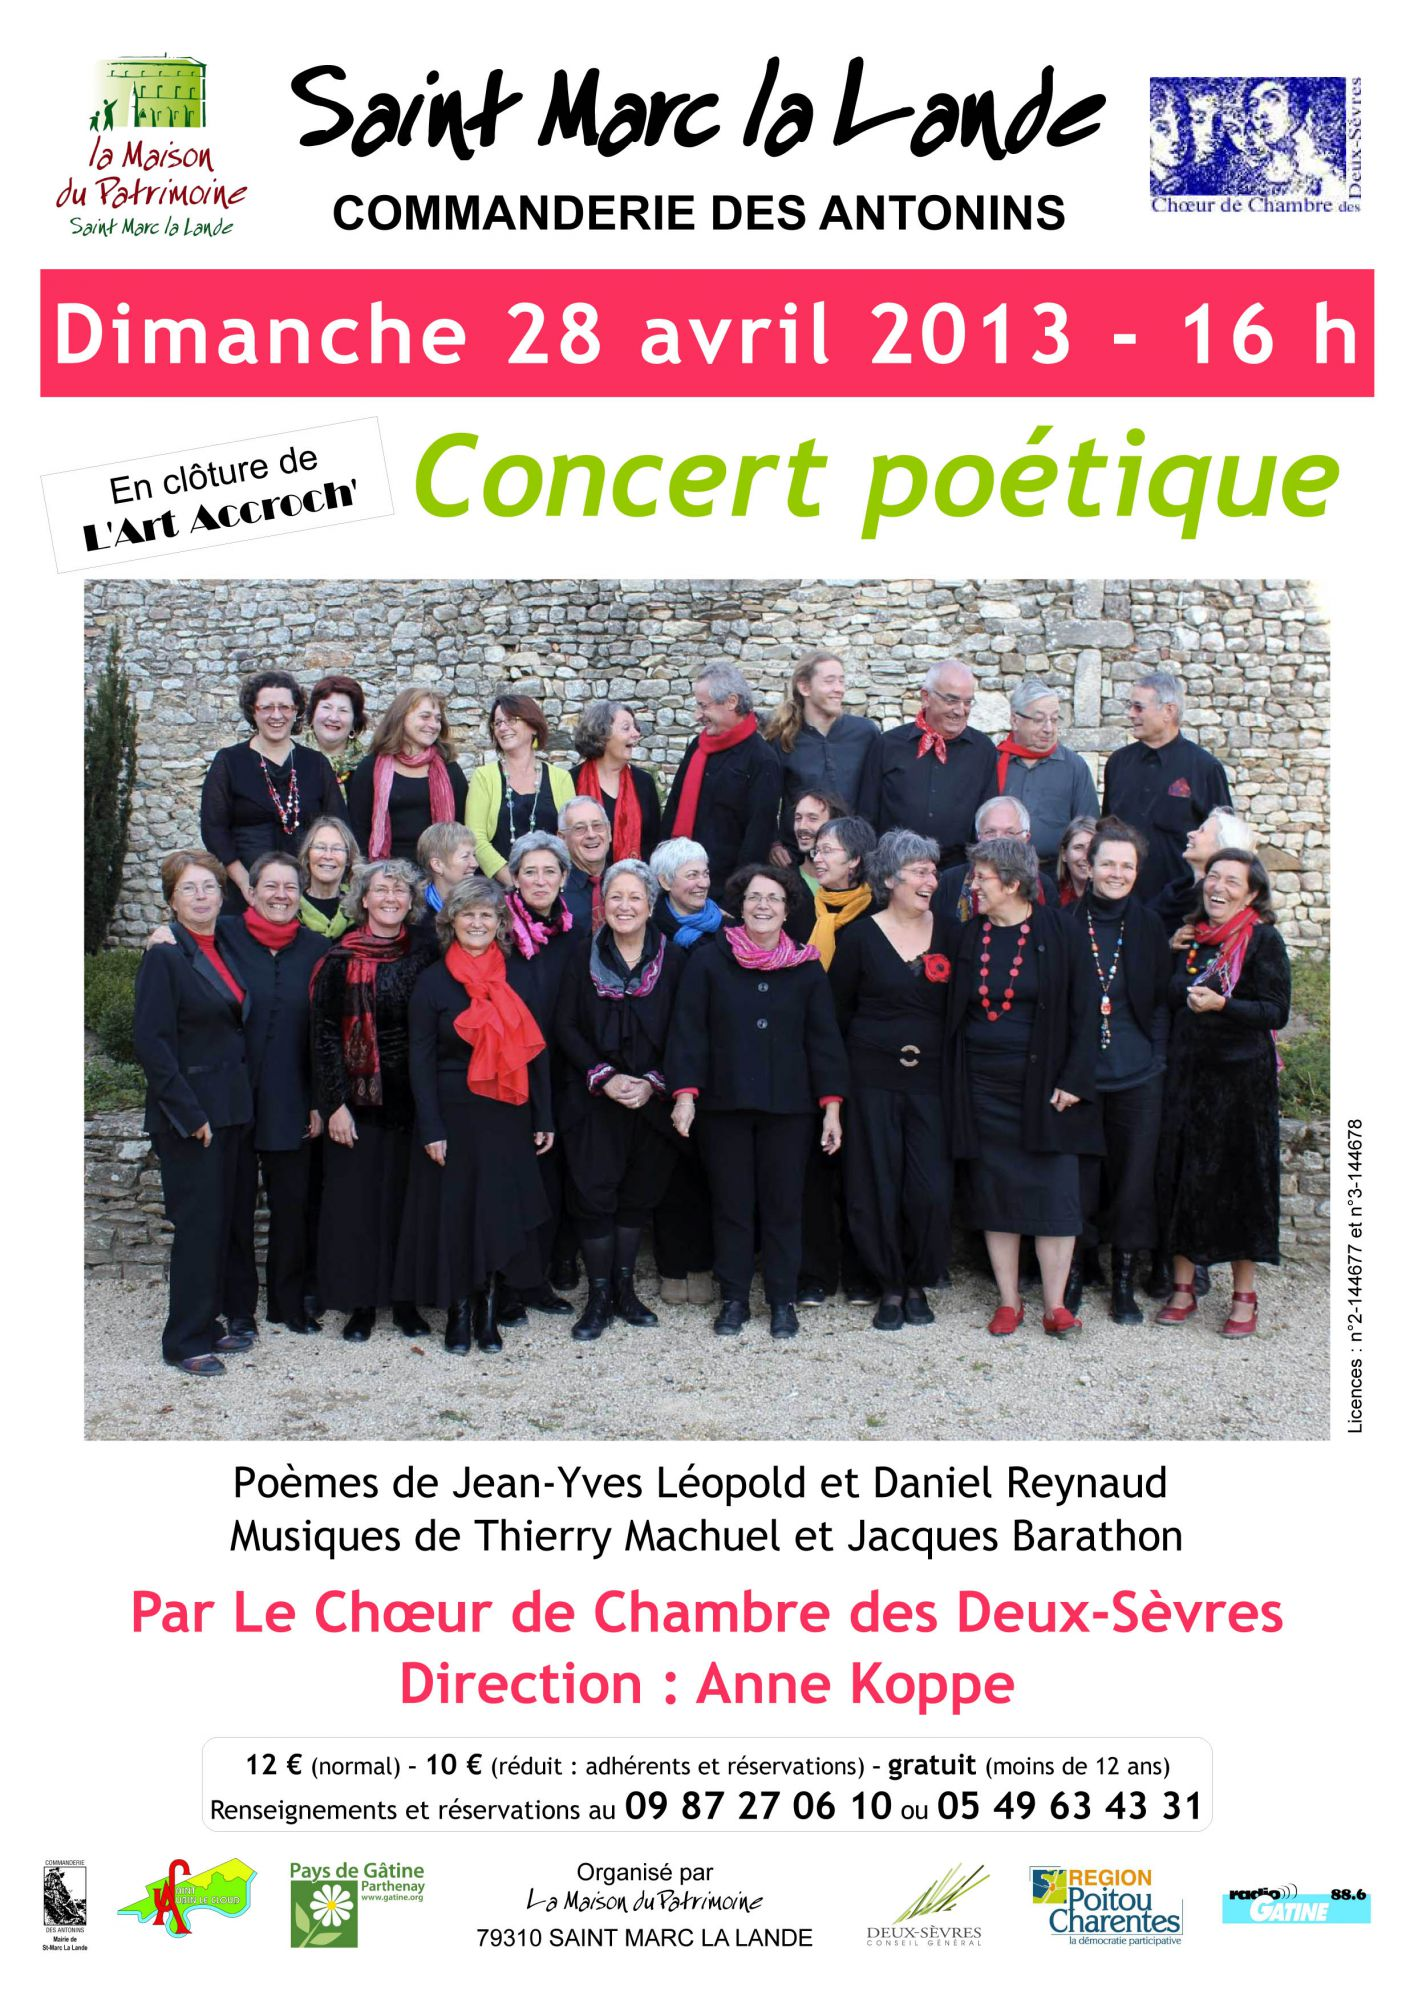 Affiche concert poetique 28 avril 2013